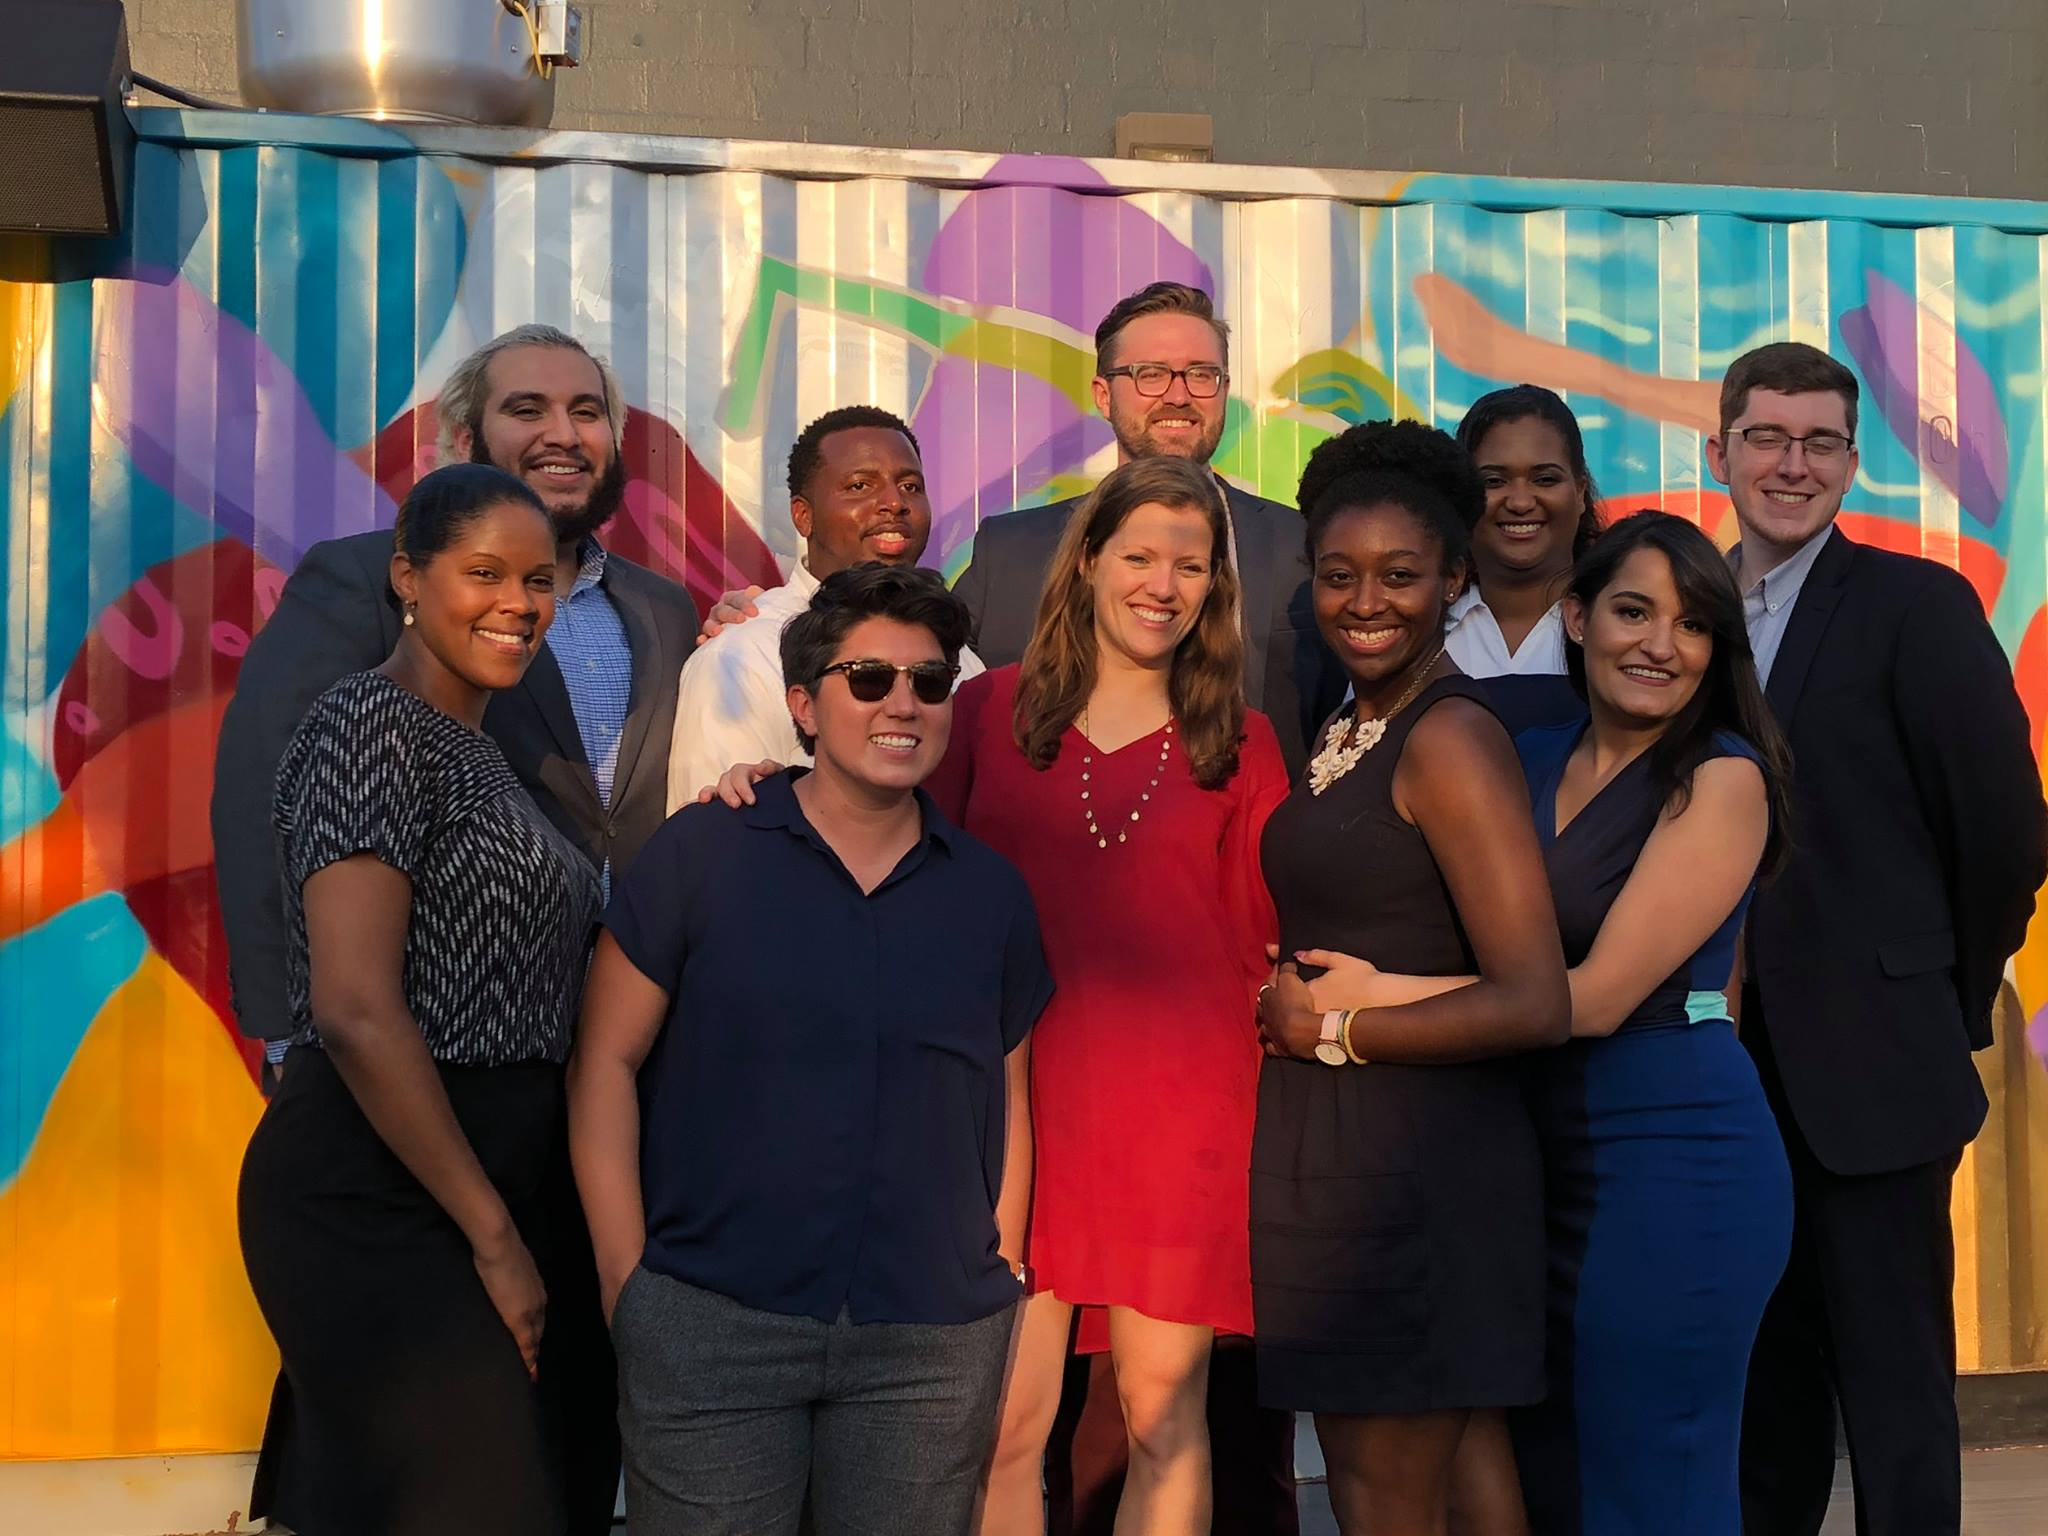 Support the next generation of progressive leaders in Tallahassee